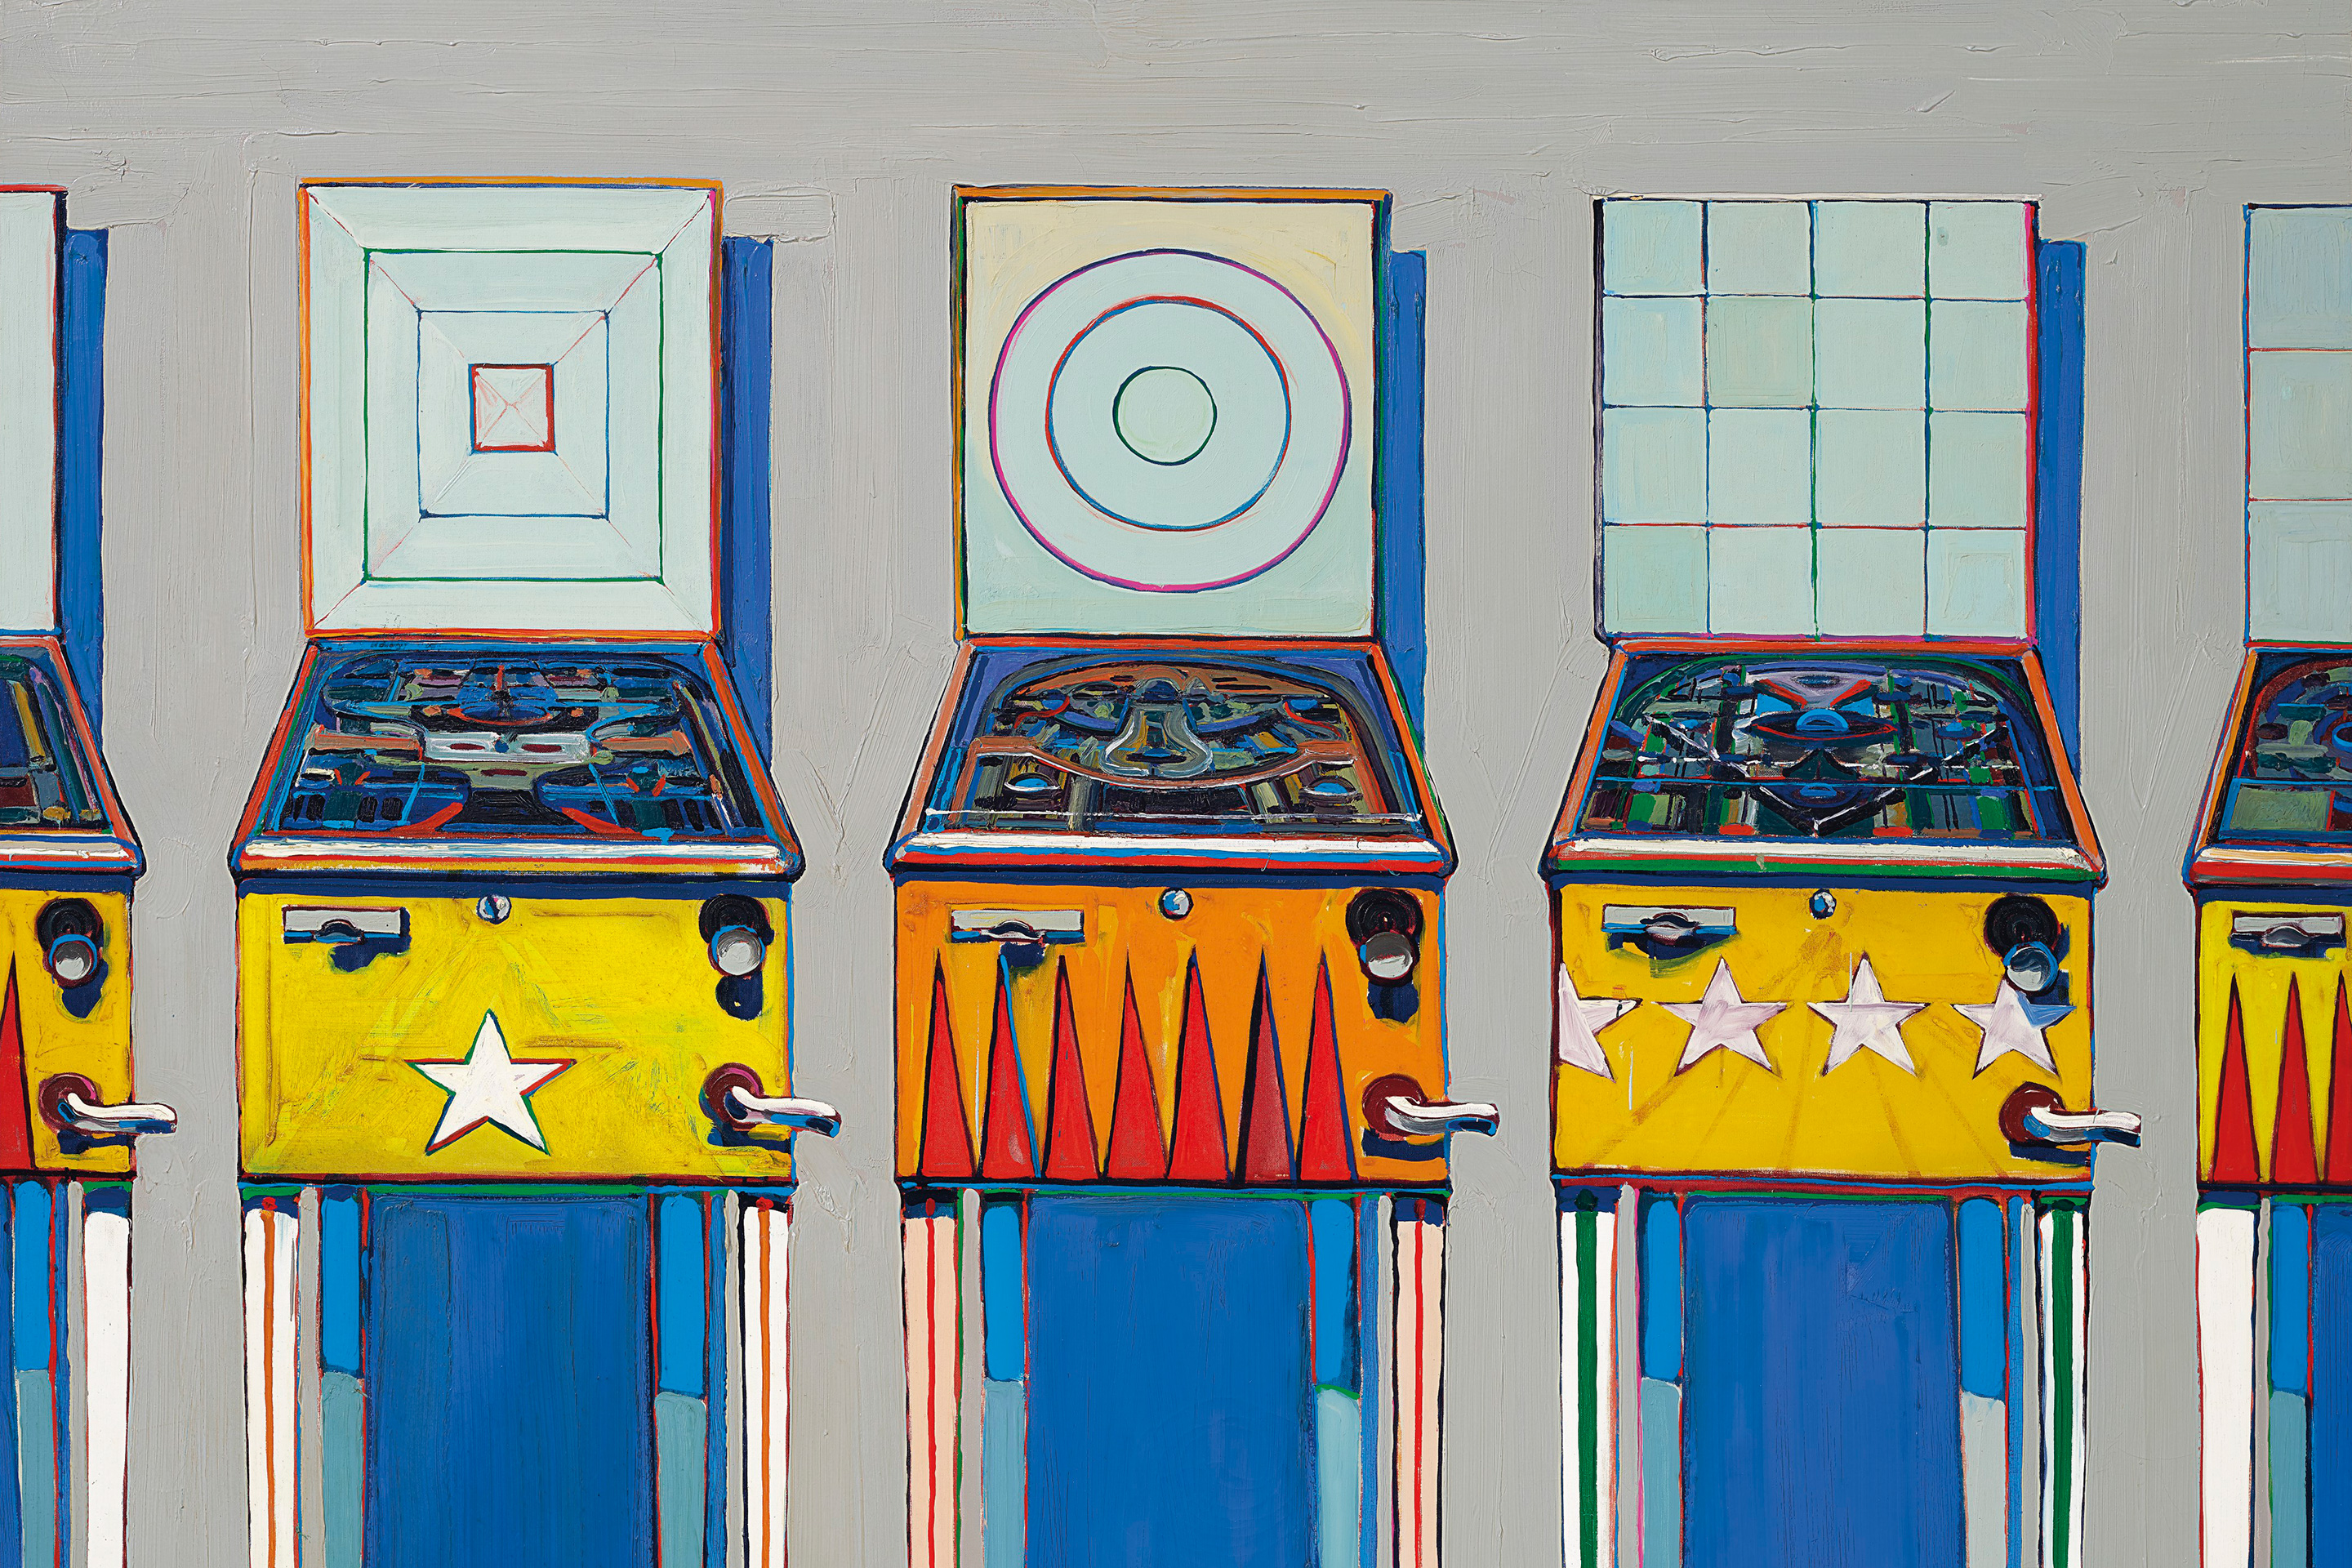 Rare 'pinball machine' painting by Wayne Thiebaud may fetch $25 million at Christie's auction next month thumbnail